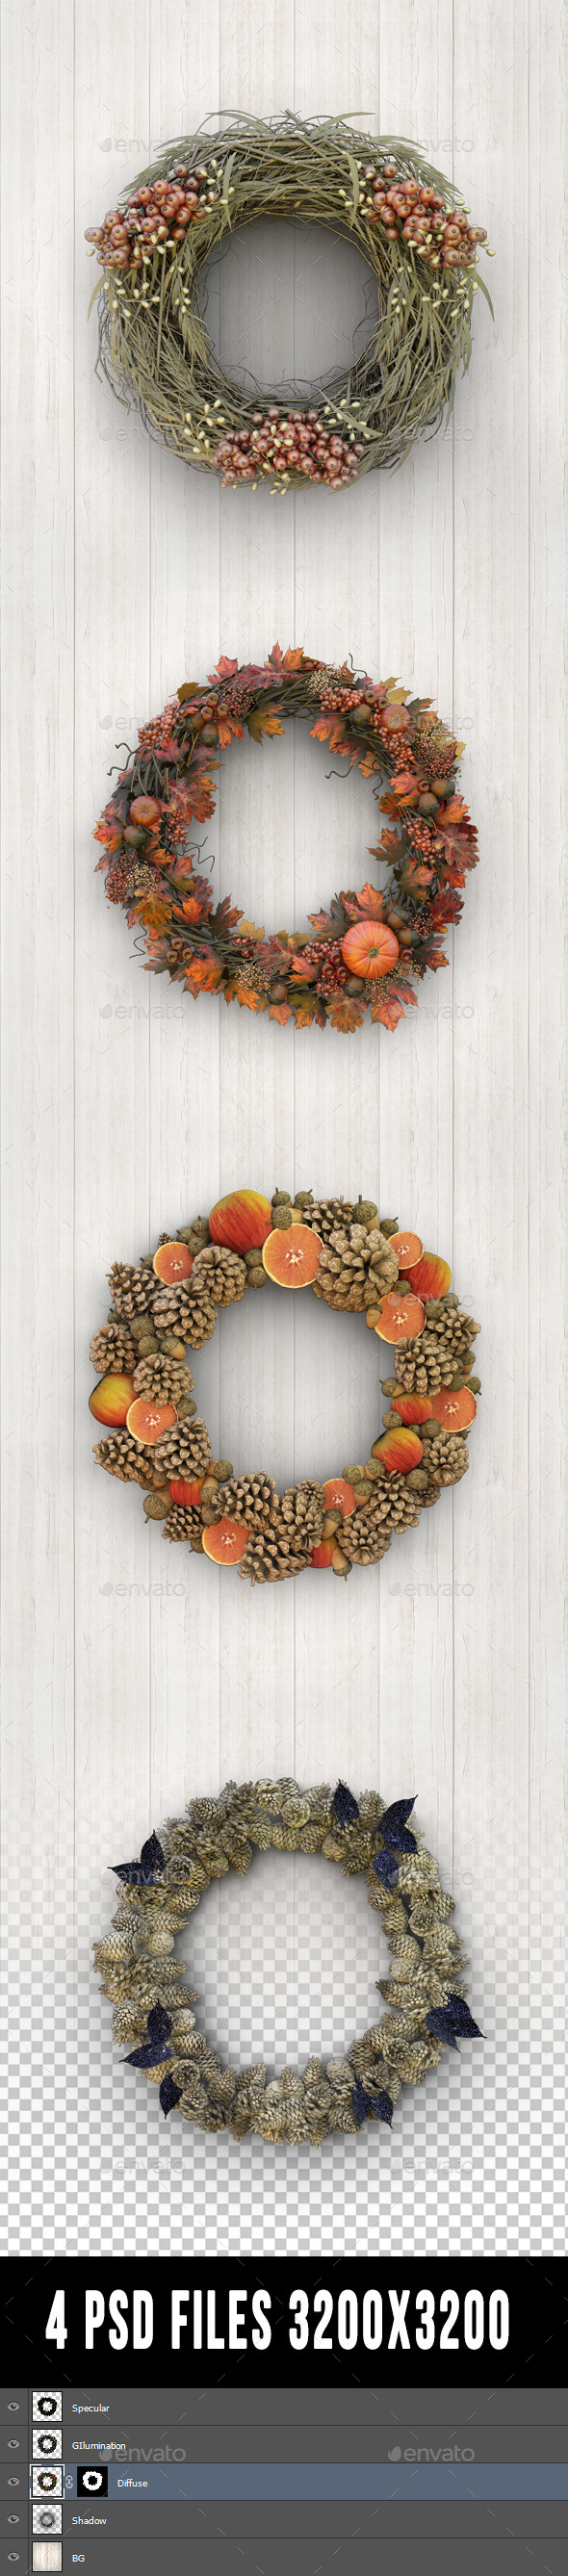 Wreaths - Objects 3D Renders